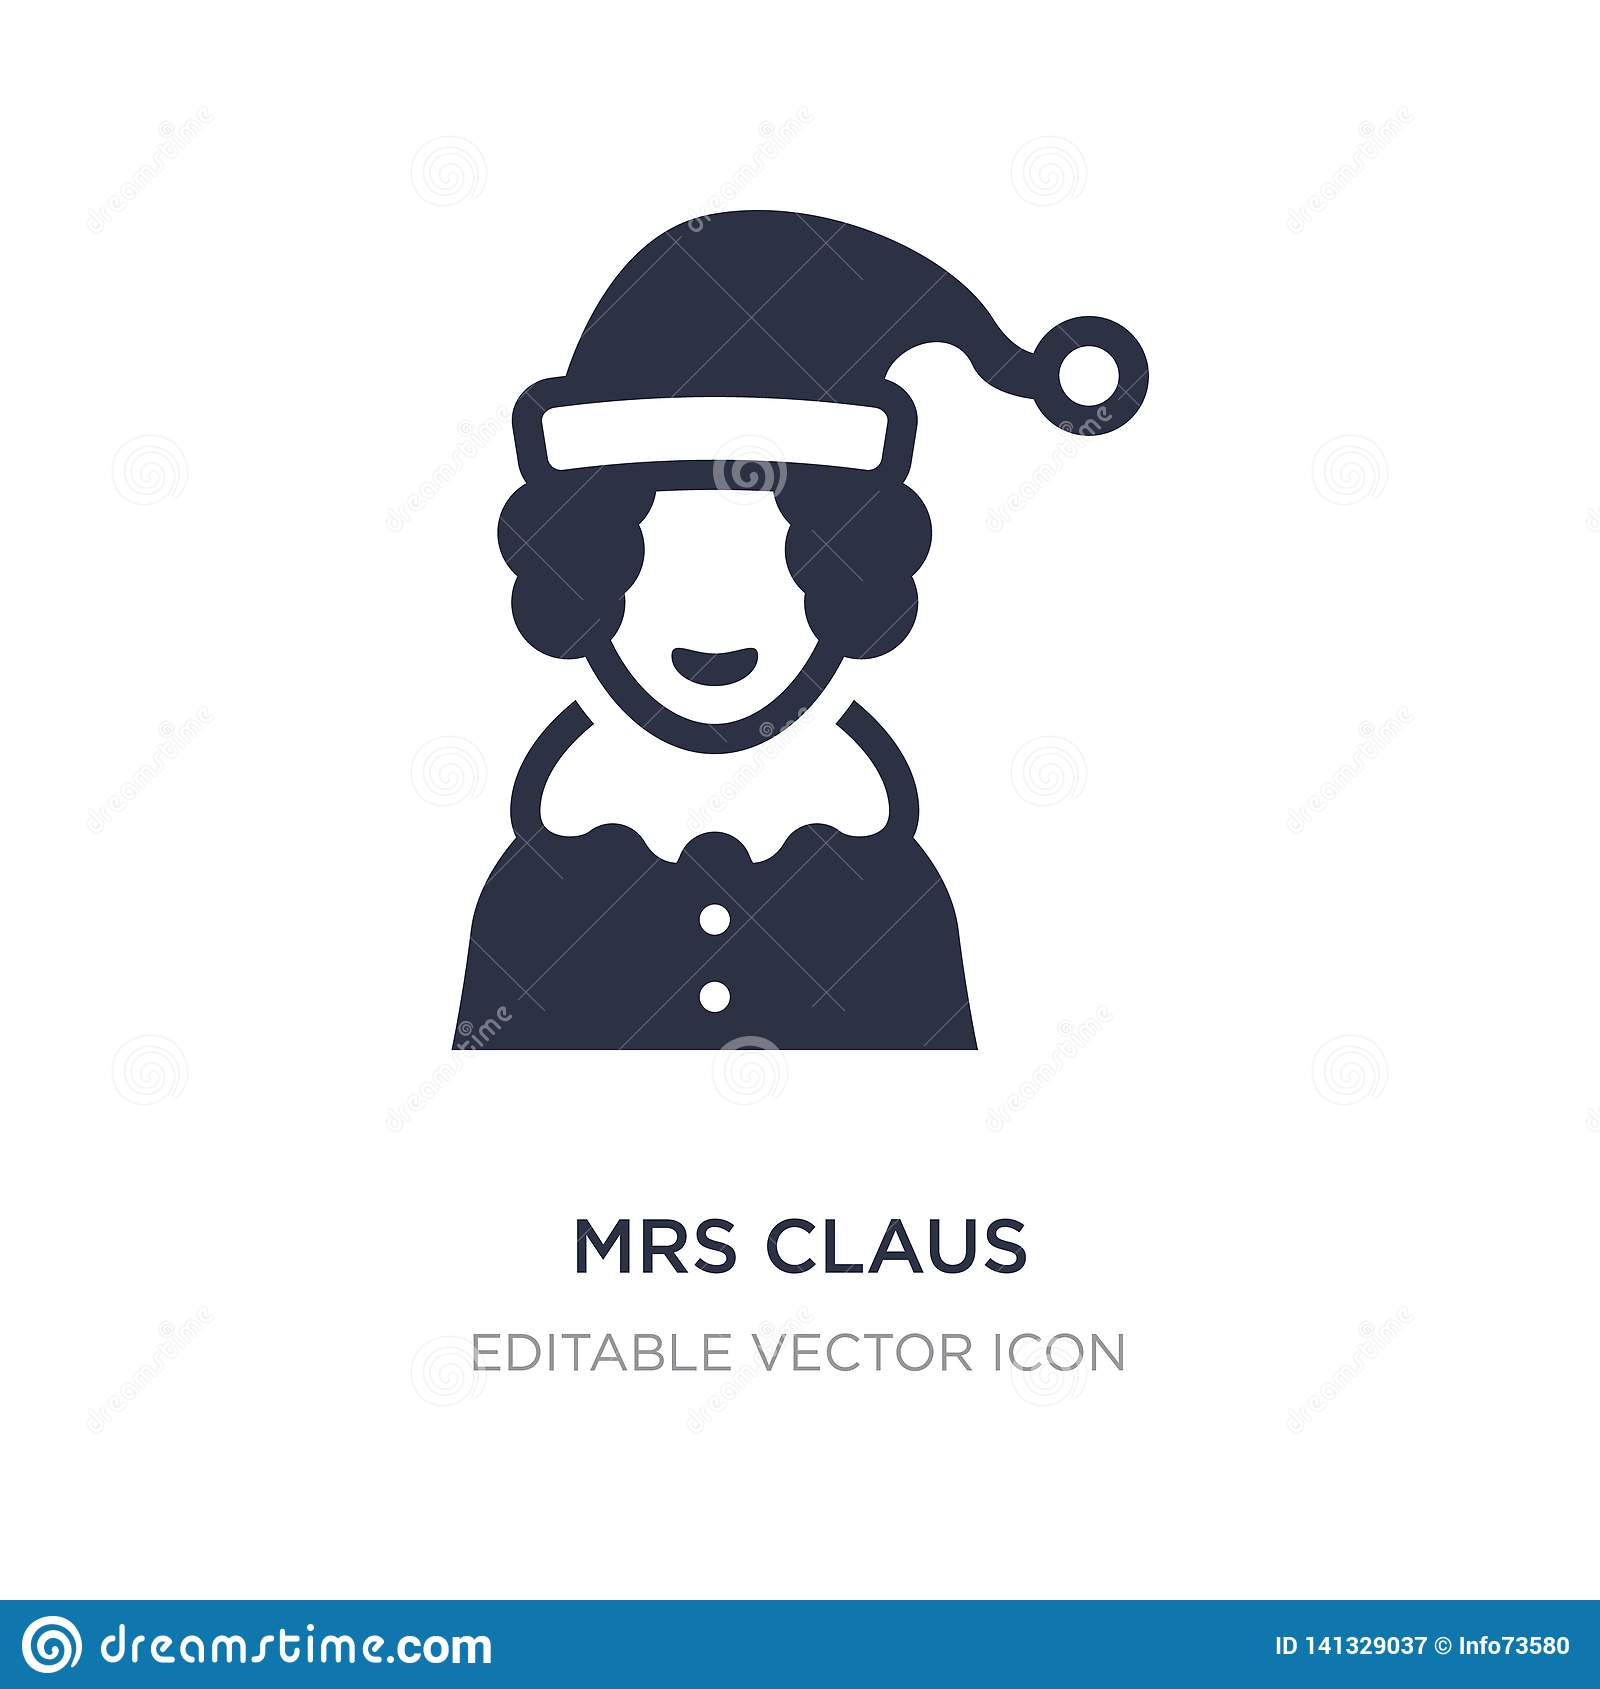 mrs claus icon on white background. Simple element illustration from Christmas concept